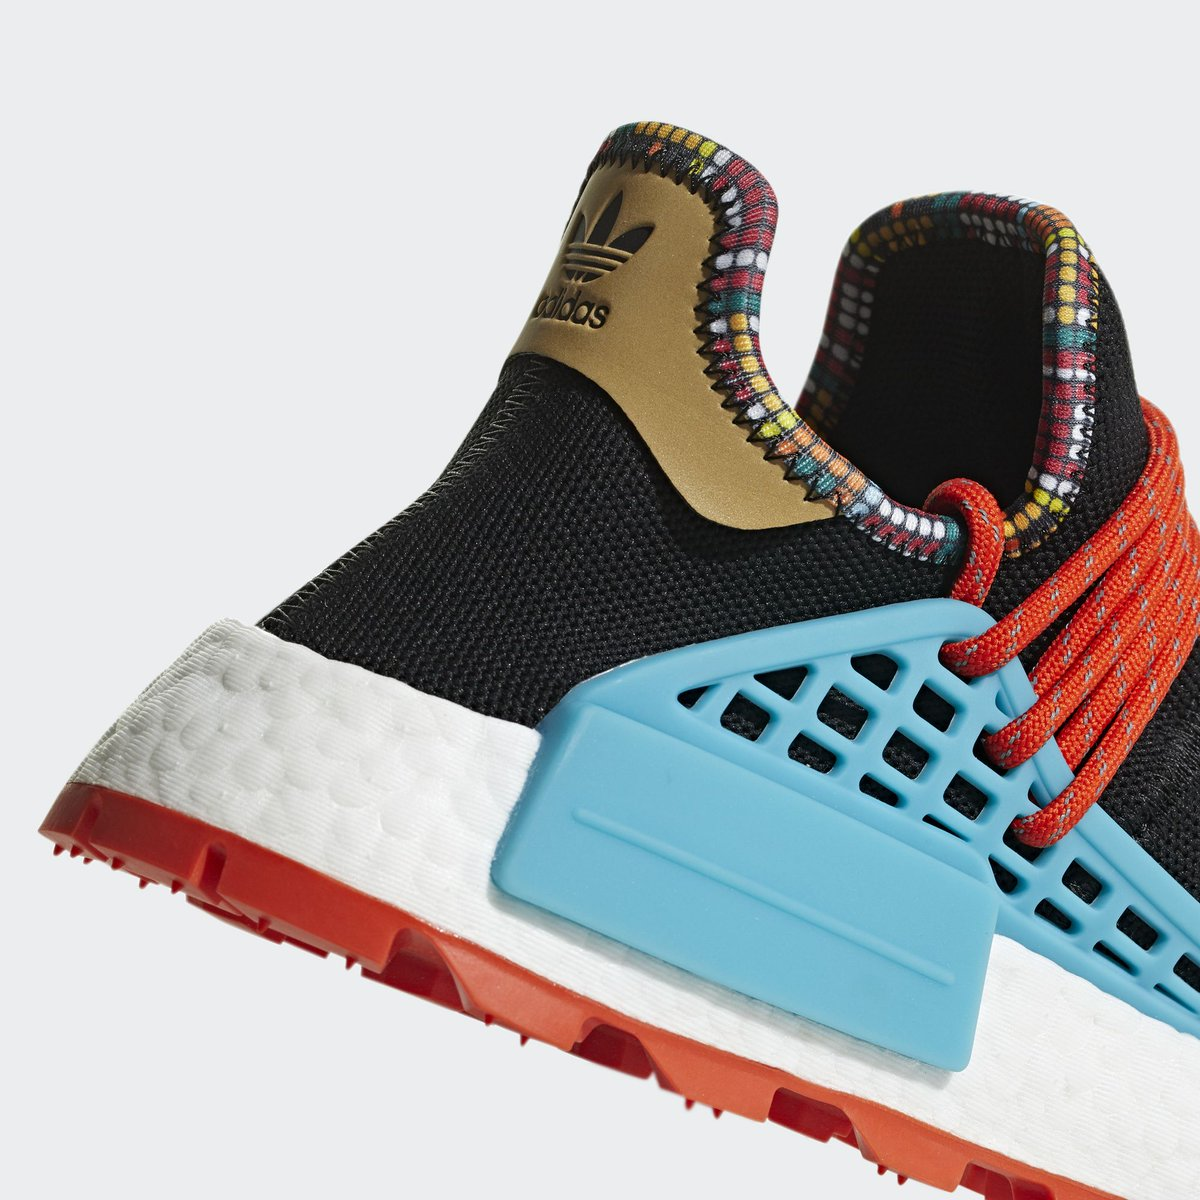 809ce9160 Official Images of Pharrell x adidas NMD Hu Inspiration Pack  Core Black  Blue  releasing in November http   bit.ly 2yAvnsi pic.twitter.com DUPuOuWTzb